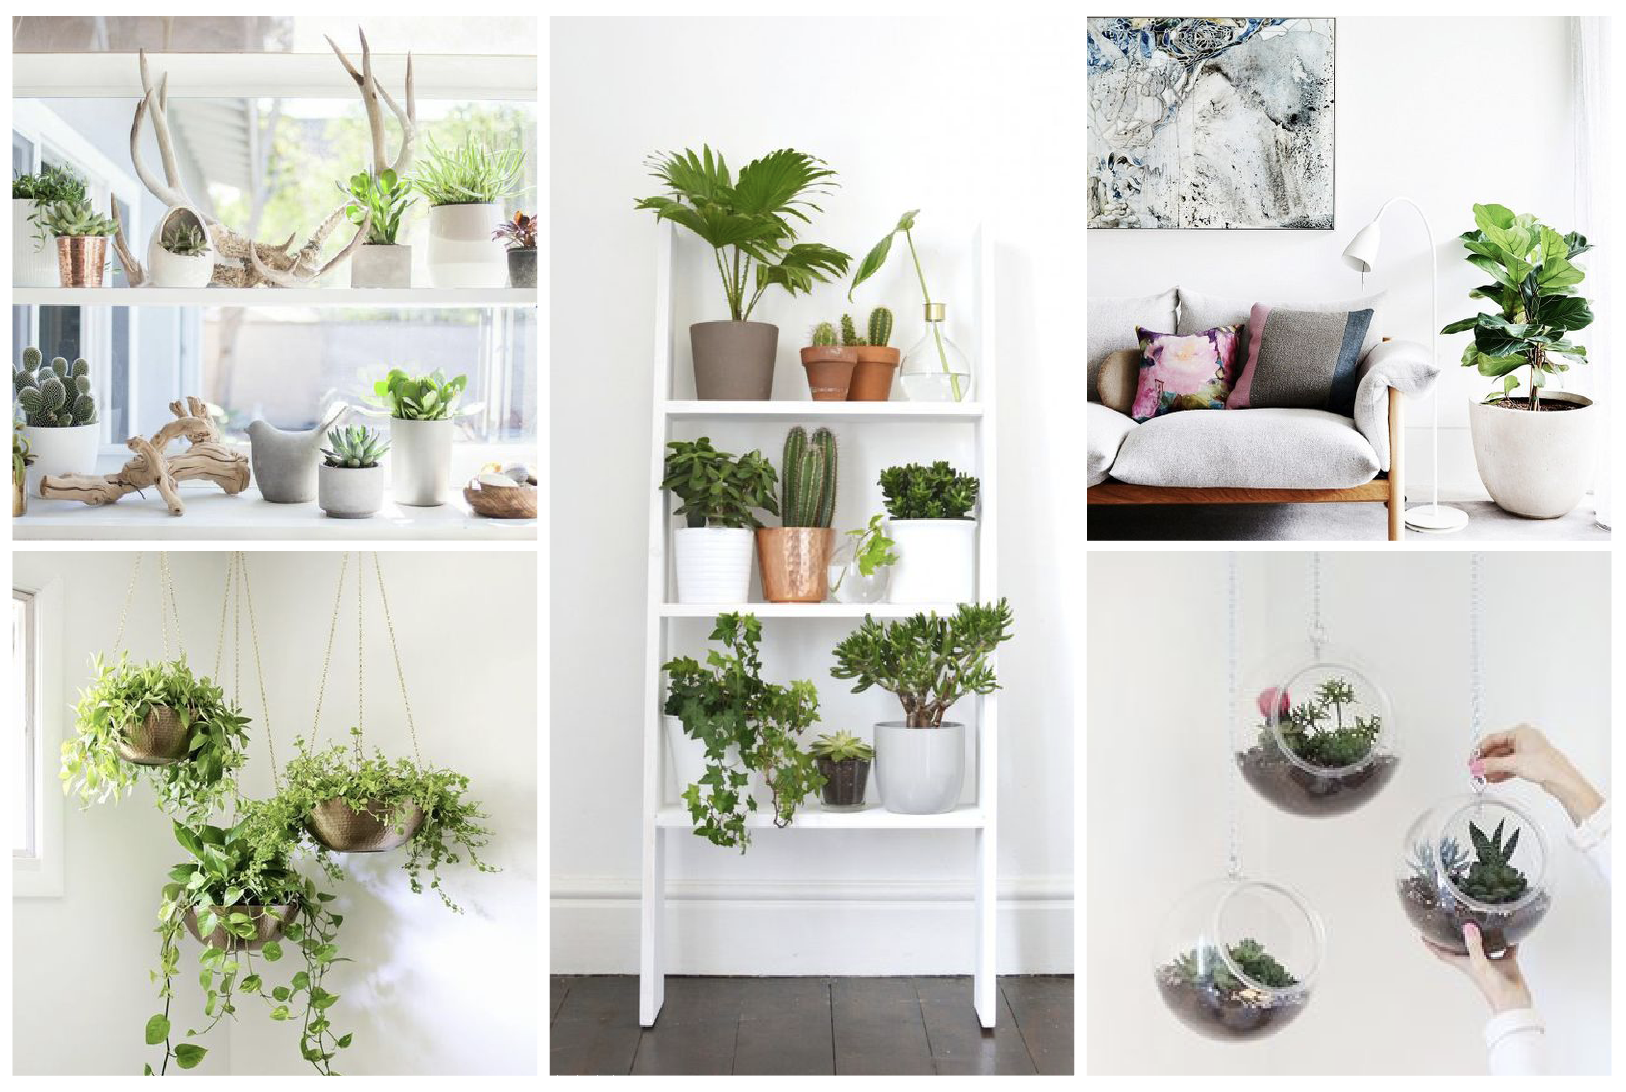 Superb plantes d interieur decoration 11 quand les for Decoration d interieur idee